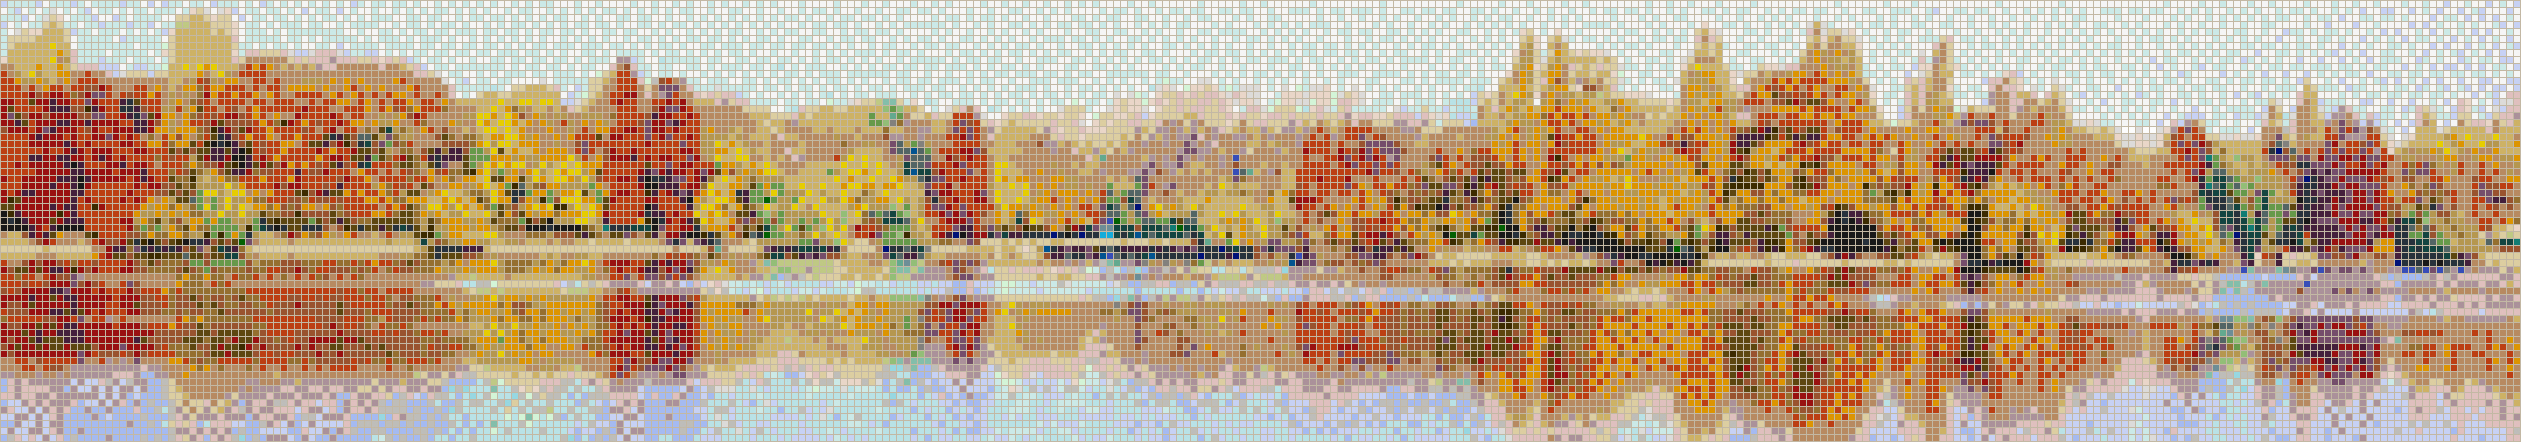 Autumn on the Lake - Mosaic Tile Picture Art